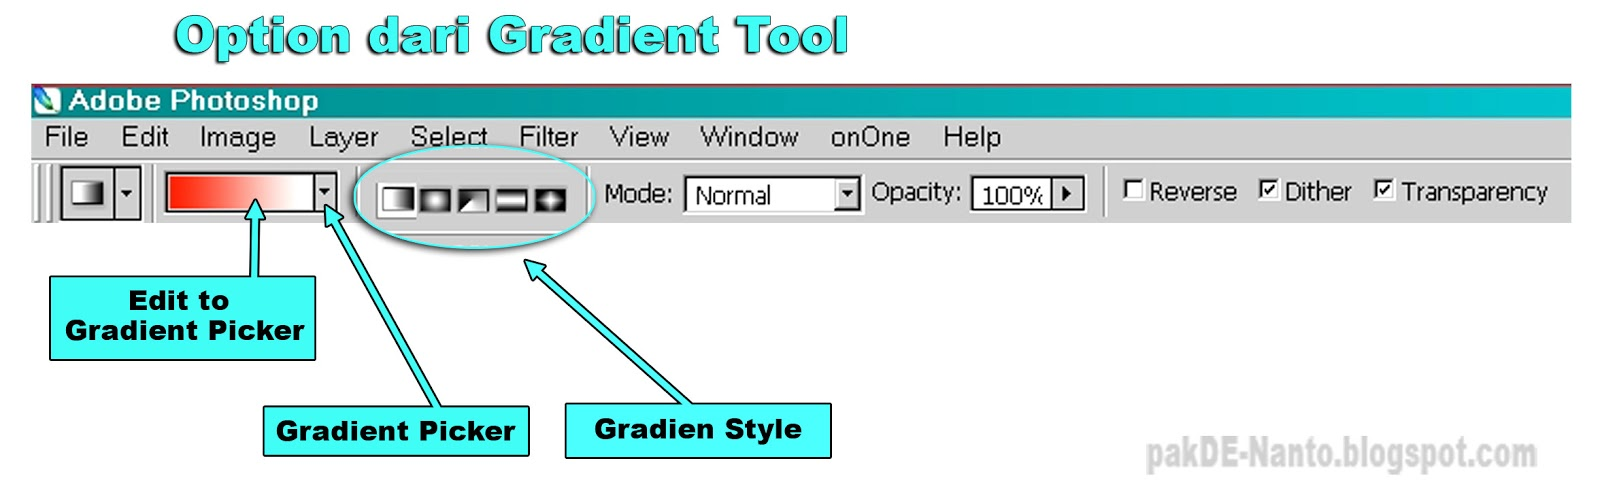 Gambar 2. Option bar dari Gradient Tool